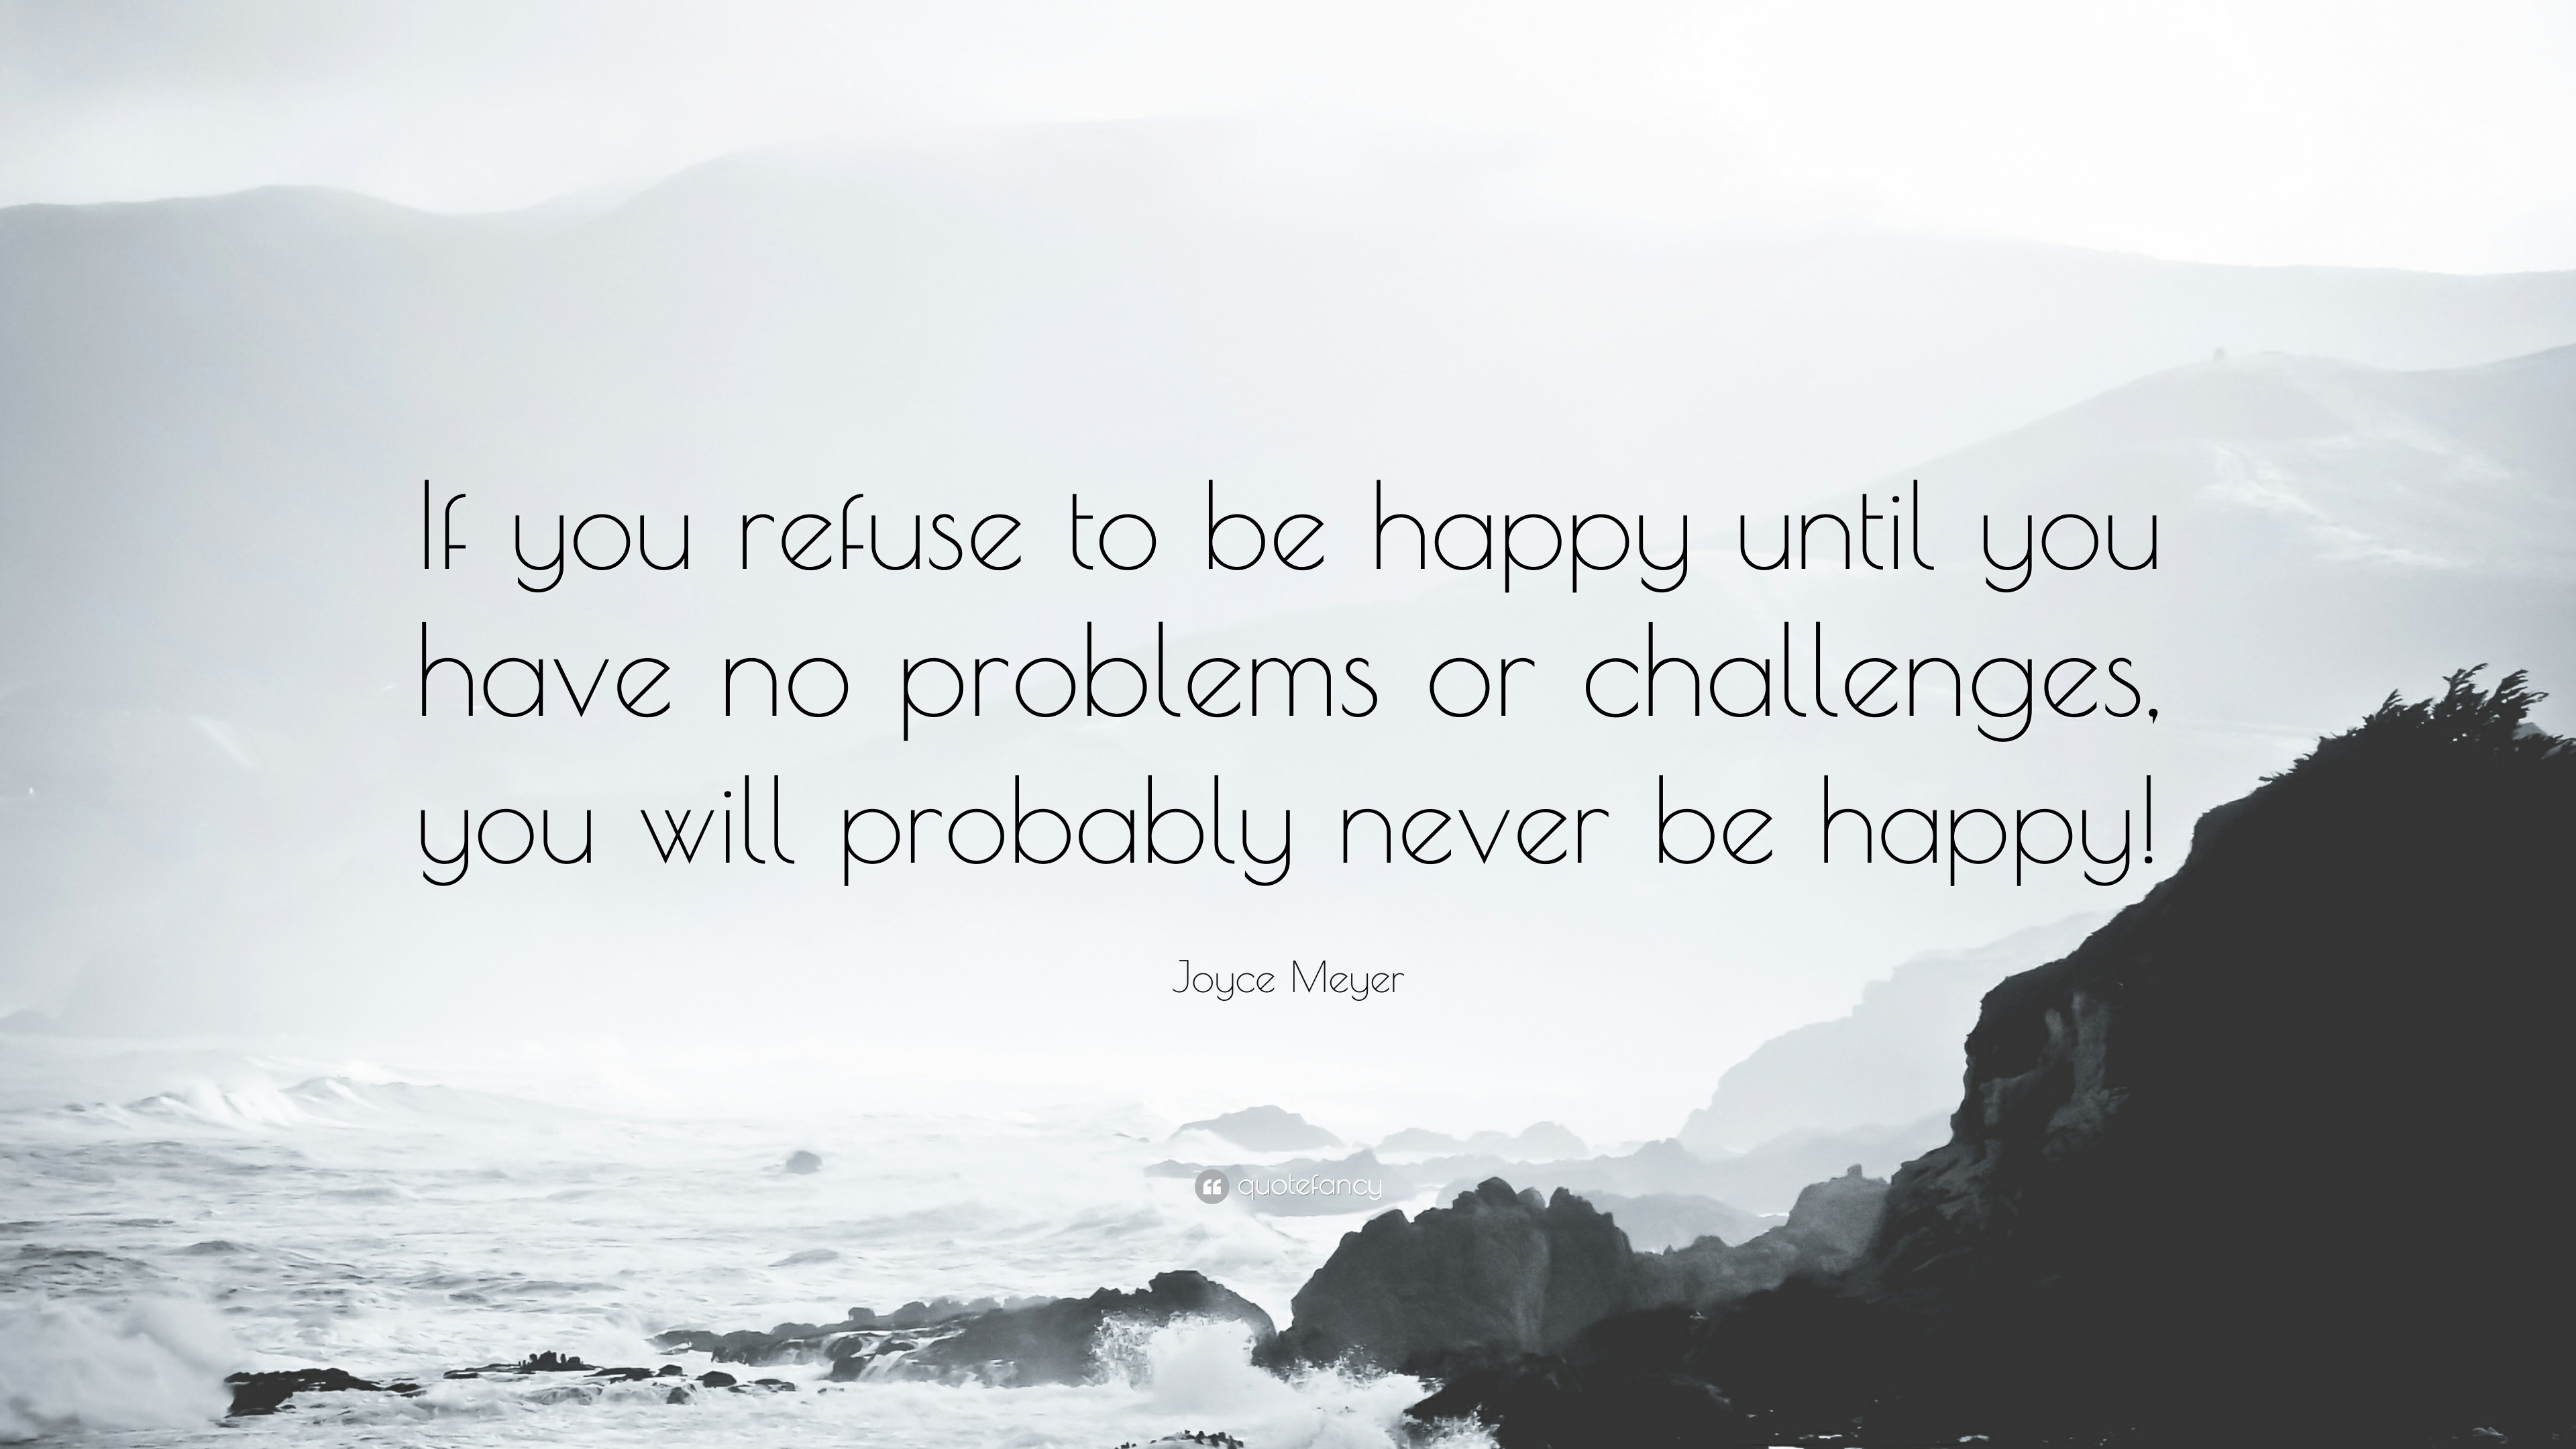 Joyce Meyer Quote: €�if You Refuse To Be Happy Until You Have No Problems